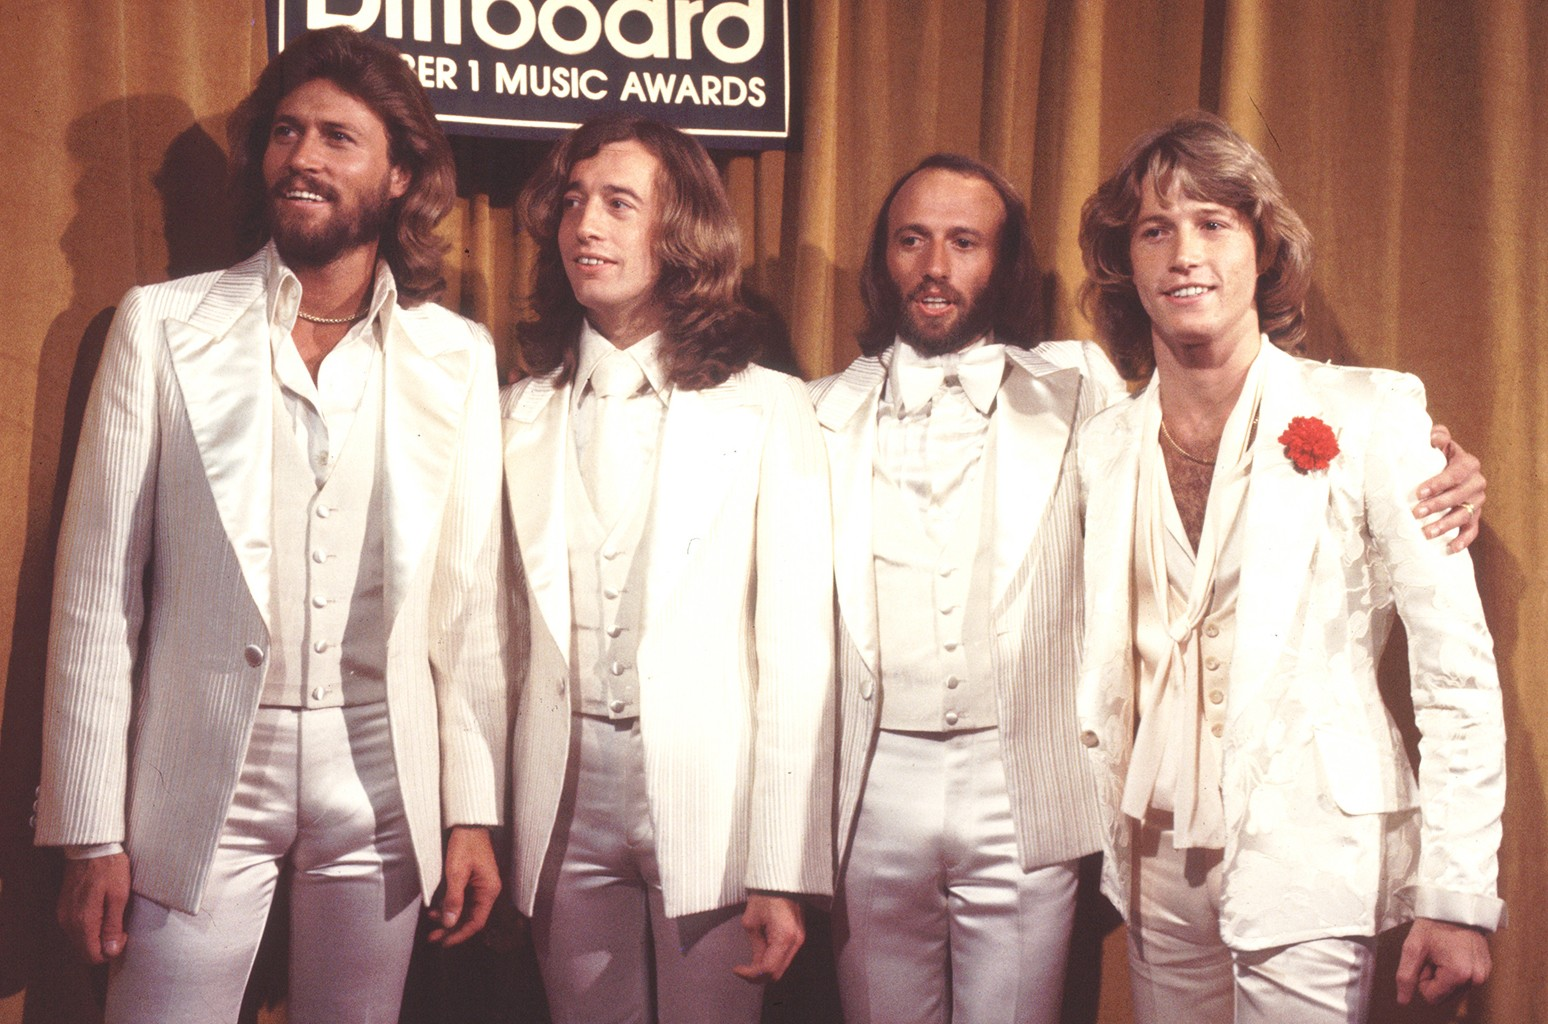 Barry Gibb, Robin Gibb and Maurice Gibb of the Bee Gees, with their brother Andy Gibb, photographed at the 1977 Billboard Music Awards